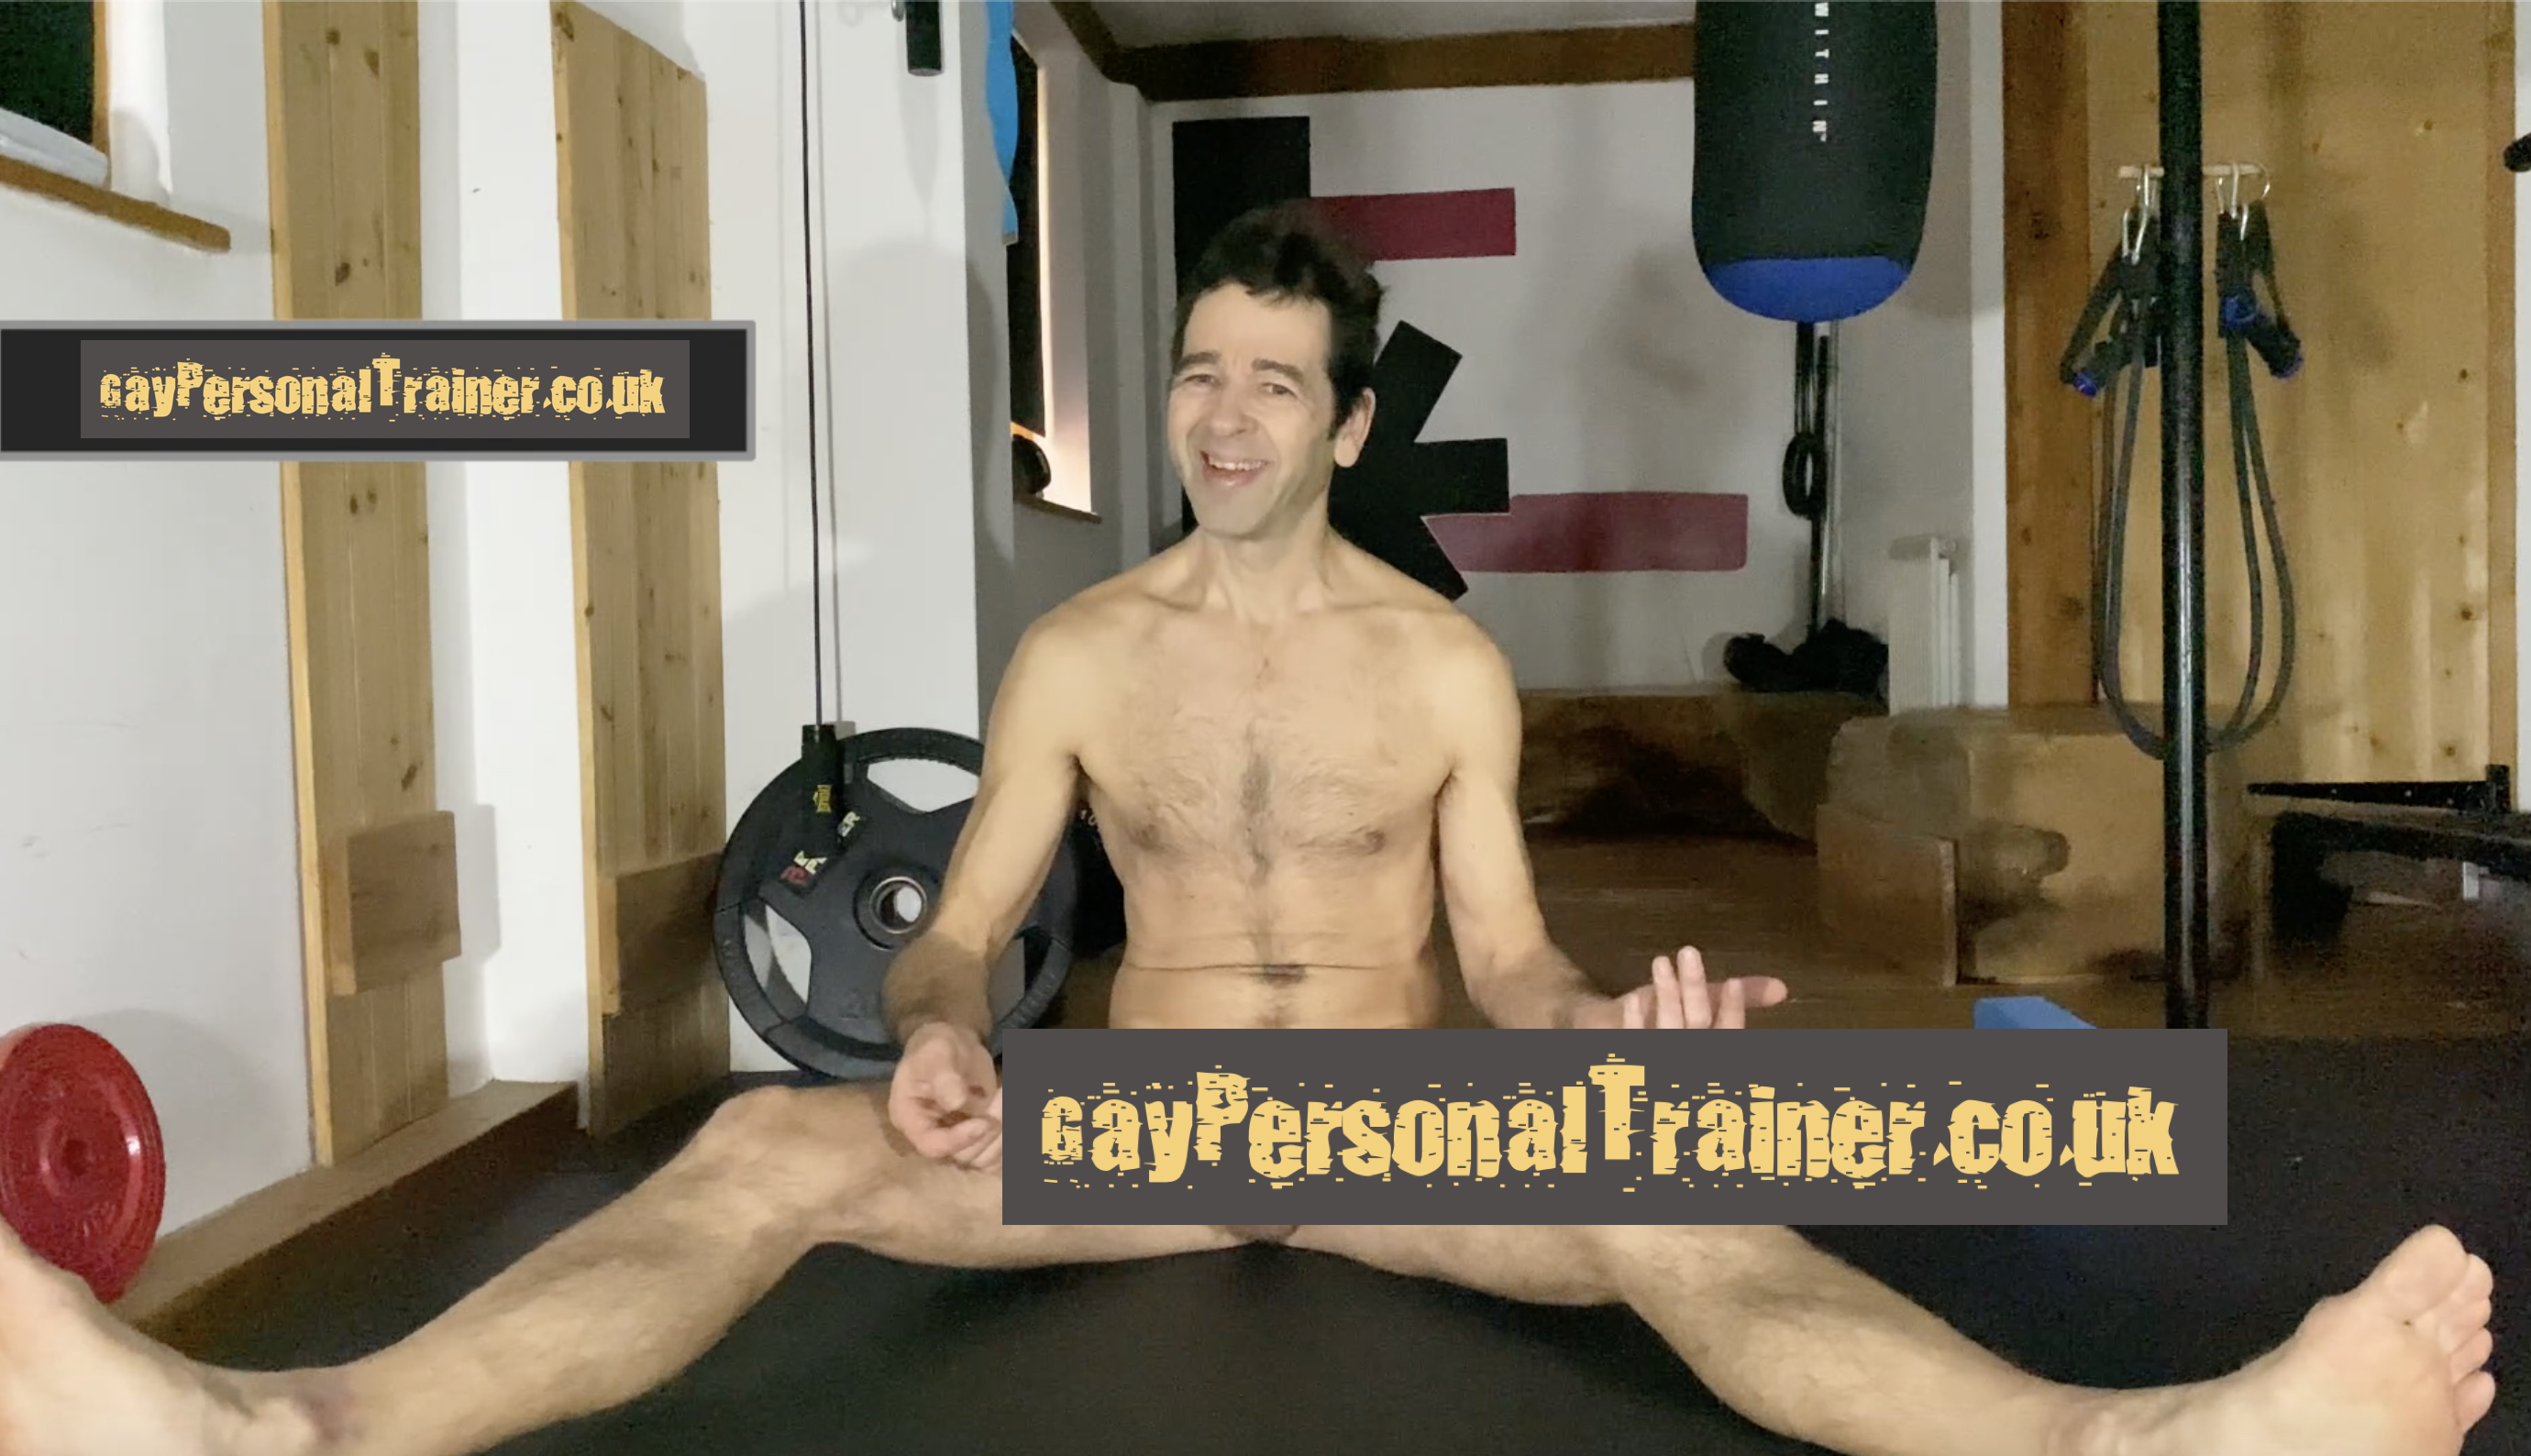 gay personal trainer naked on the floor with some writing to hide penis from view